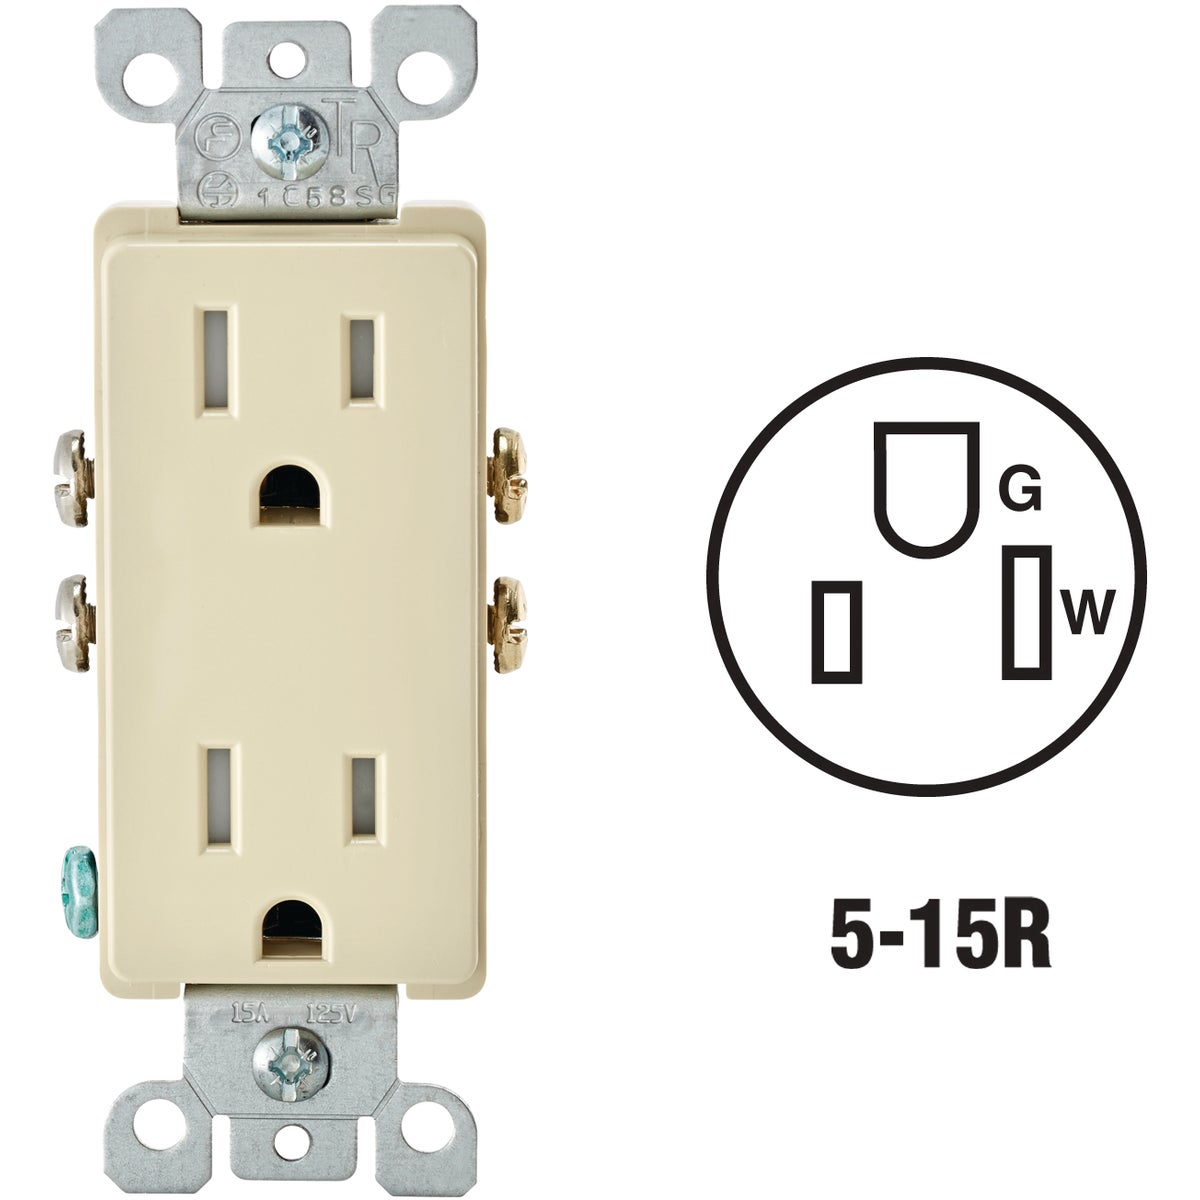 IV DUPLEX DECO TAMPER - R58-T5325-00I by Leviton Mfg Co